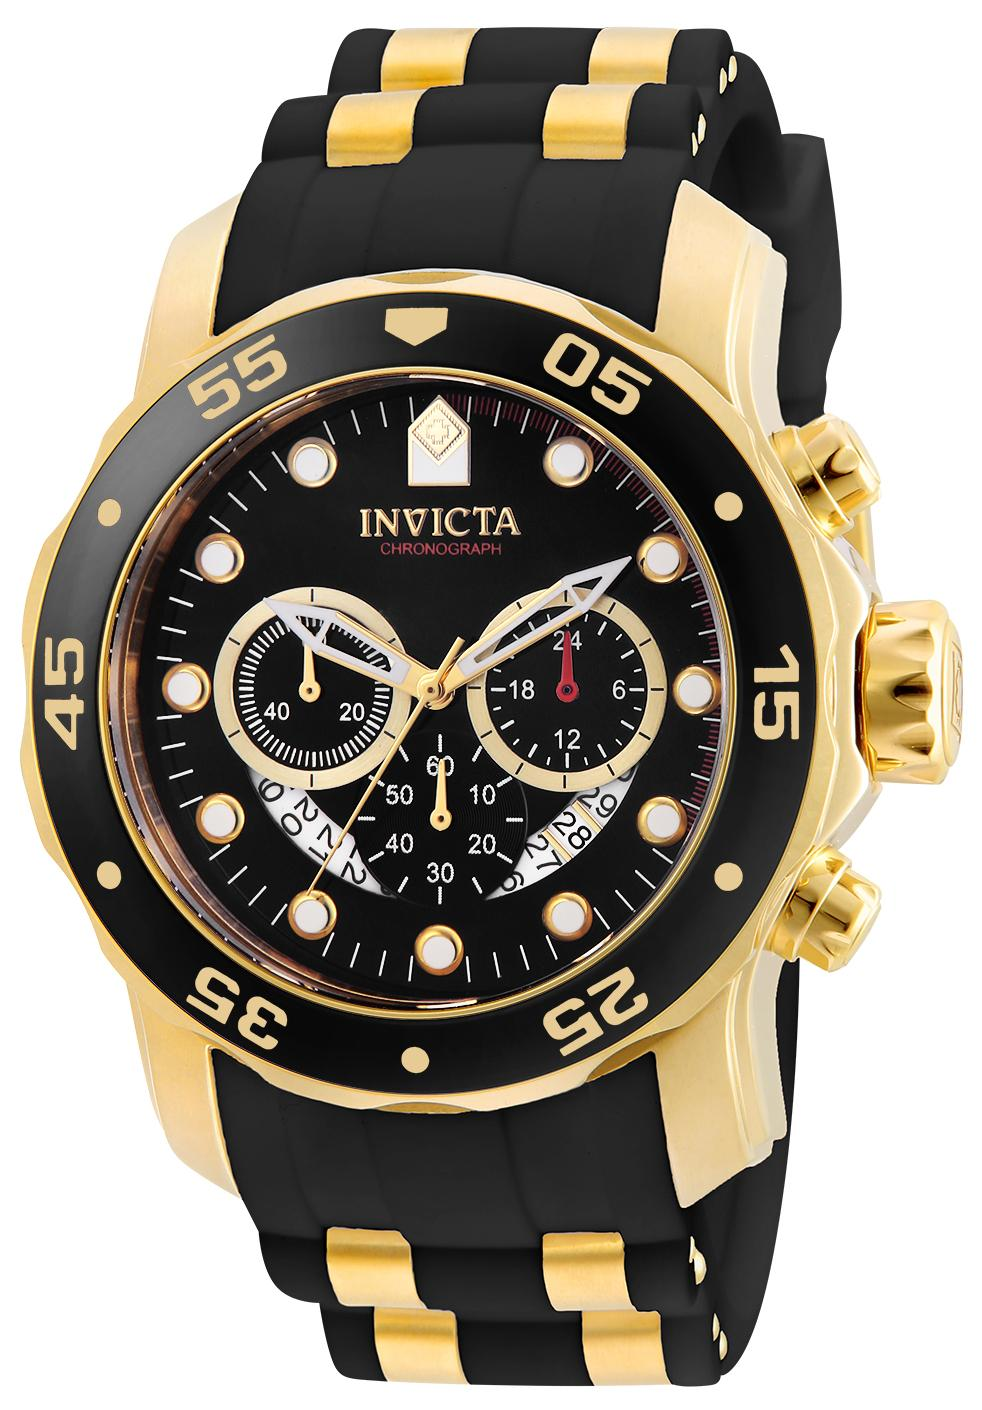 Invicta Men's 6981 Pro Diver Analog Swiss Chronograph Black Polyurethane Watch $59.99